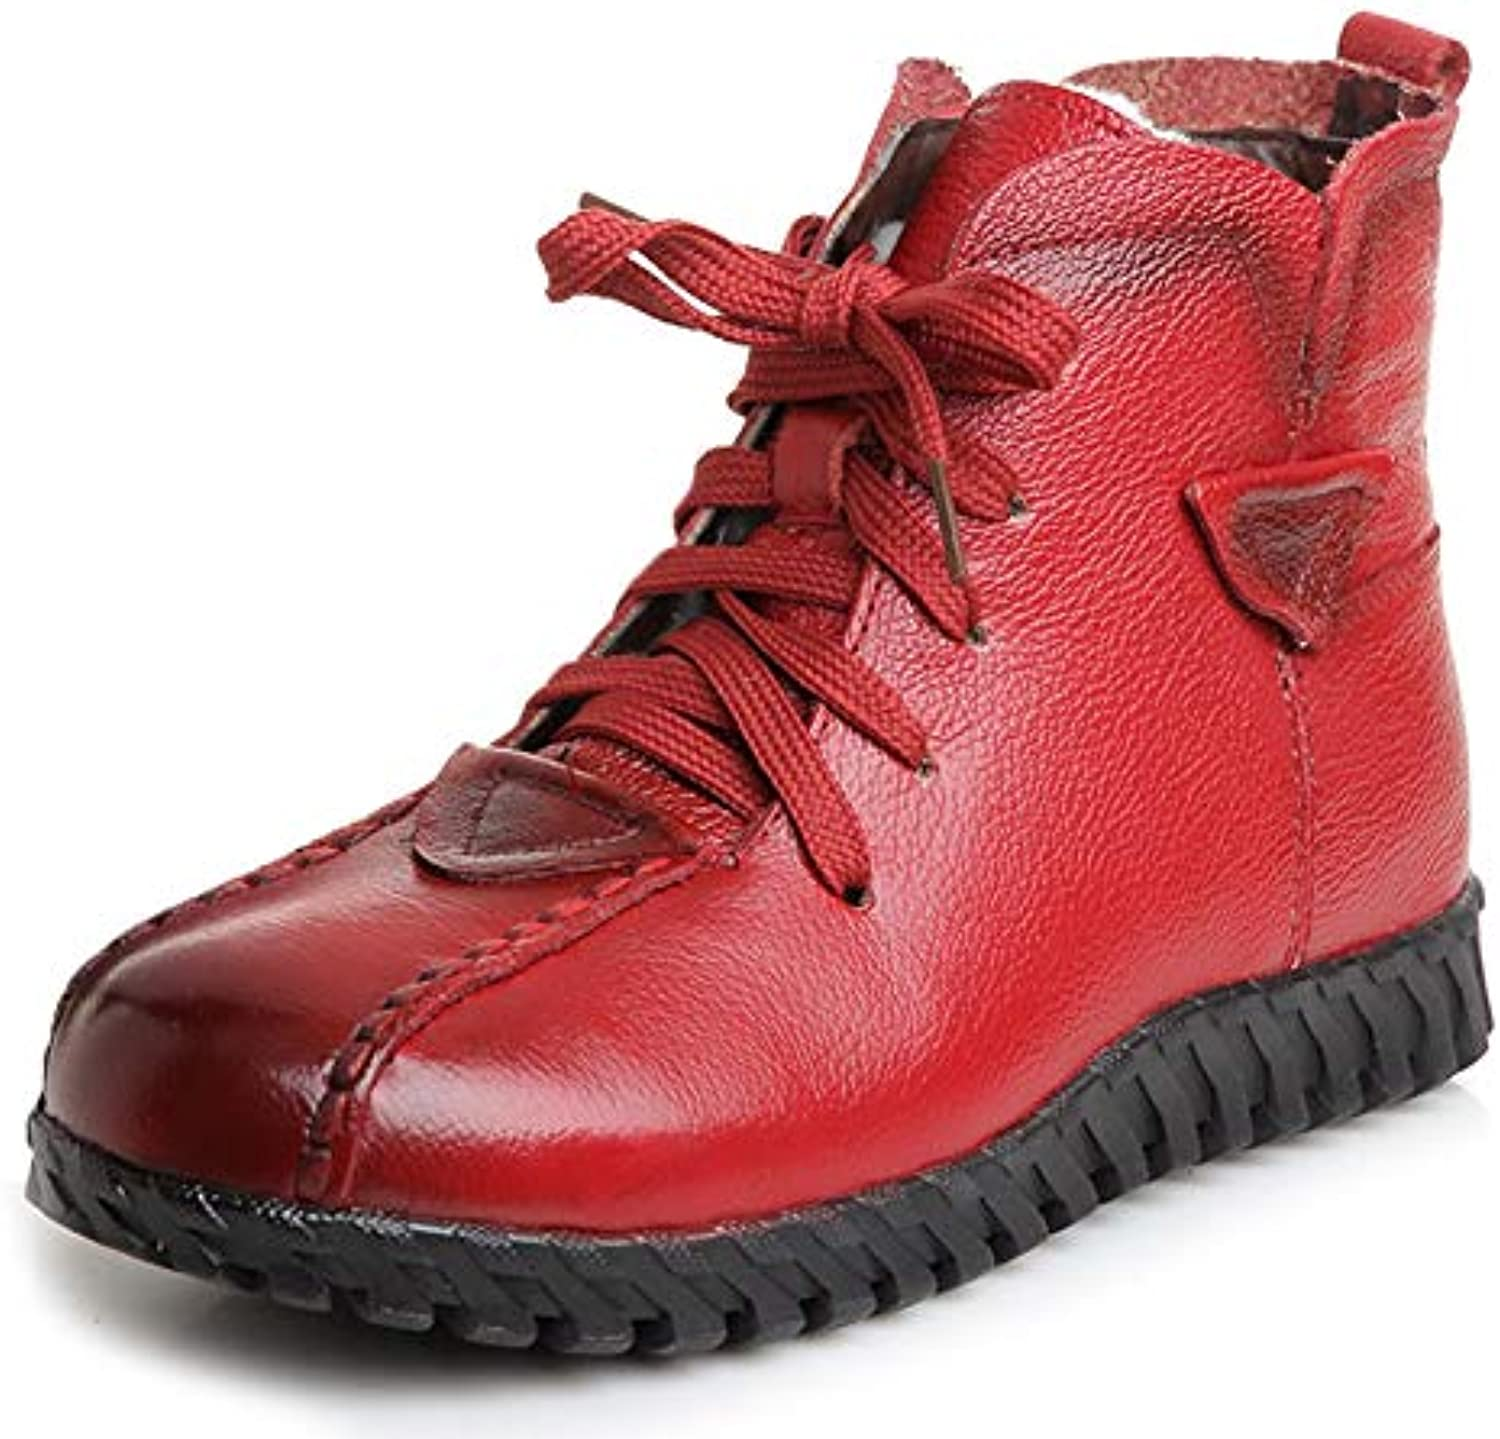 T-JULY Women Snow Boots Genuine Leather Thick Wool Lace Up Flat Ankle Boots Winter Bottine Femme Warm shoes